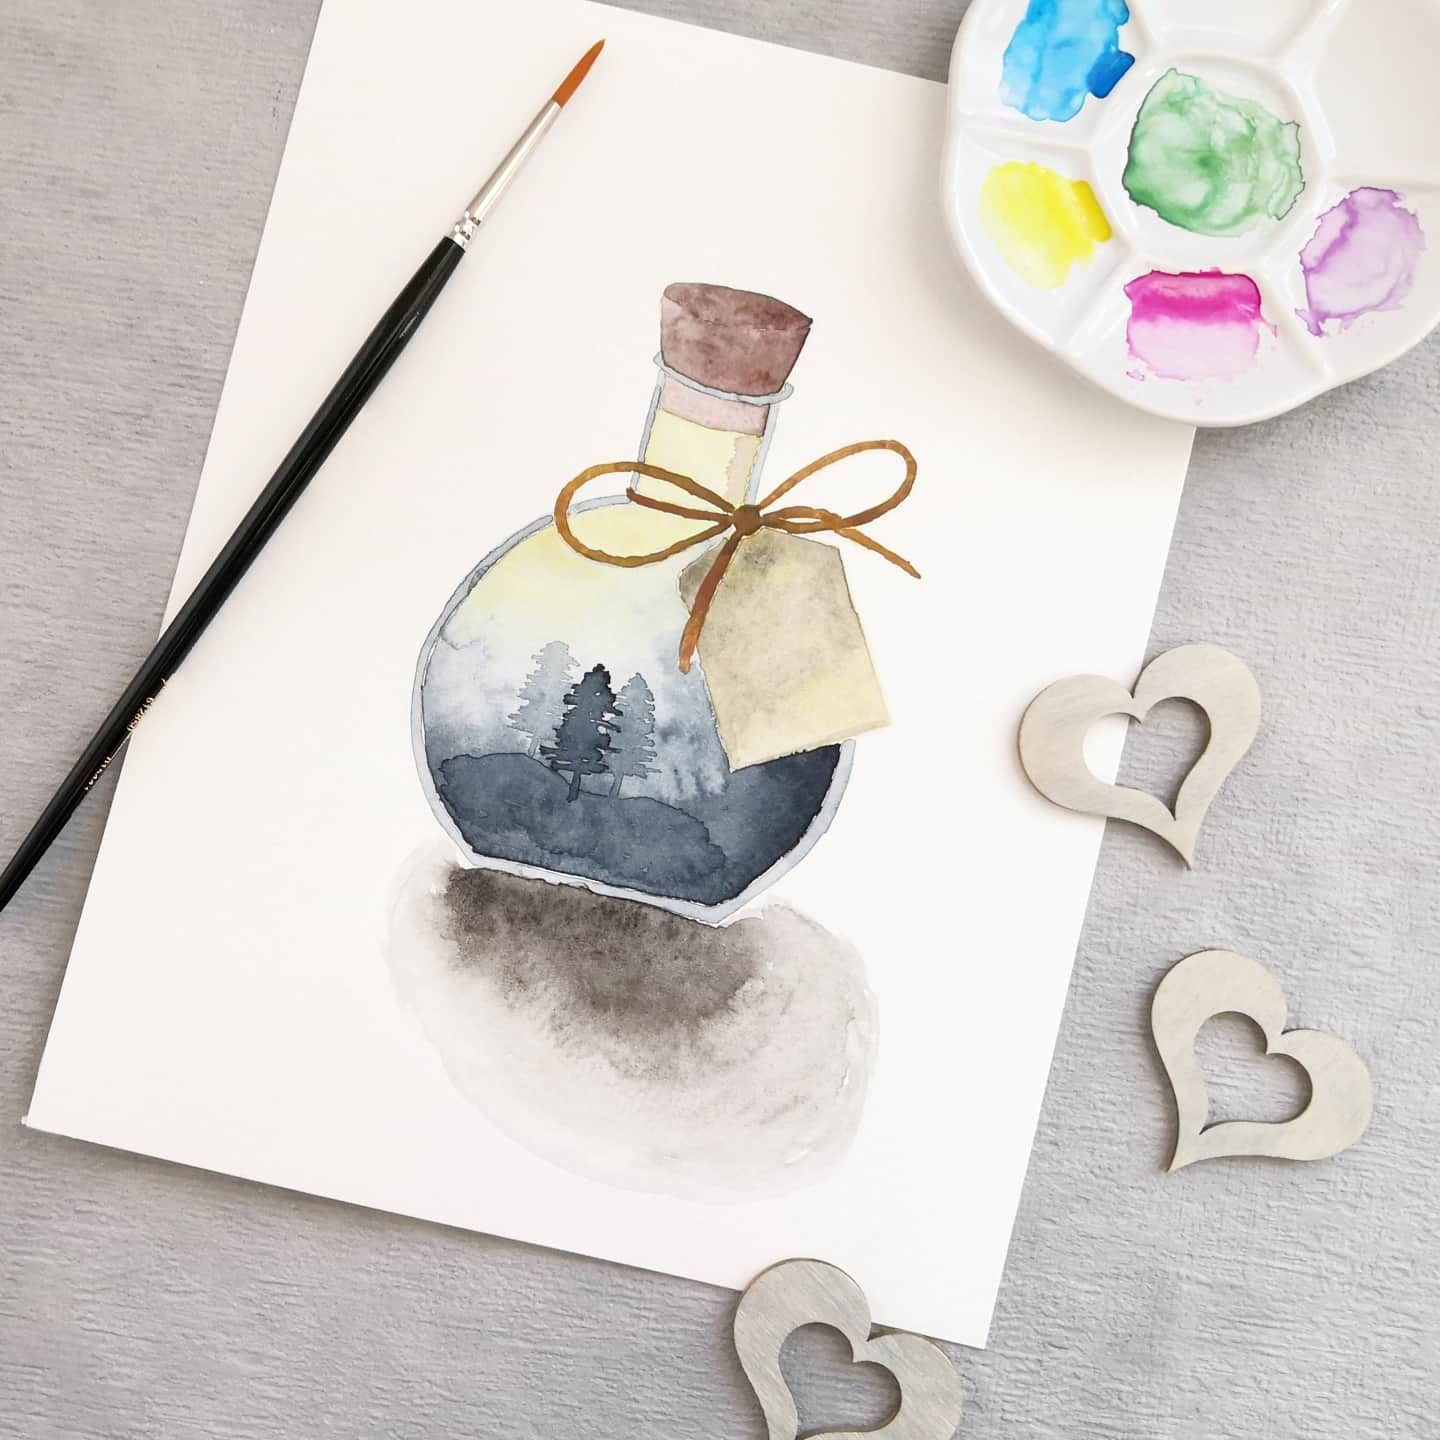 Watercolor Art Diy Bilder Kreativ Aquarell